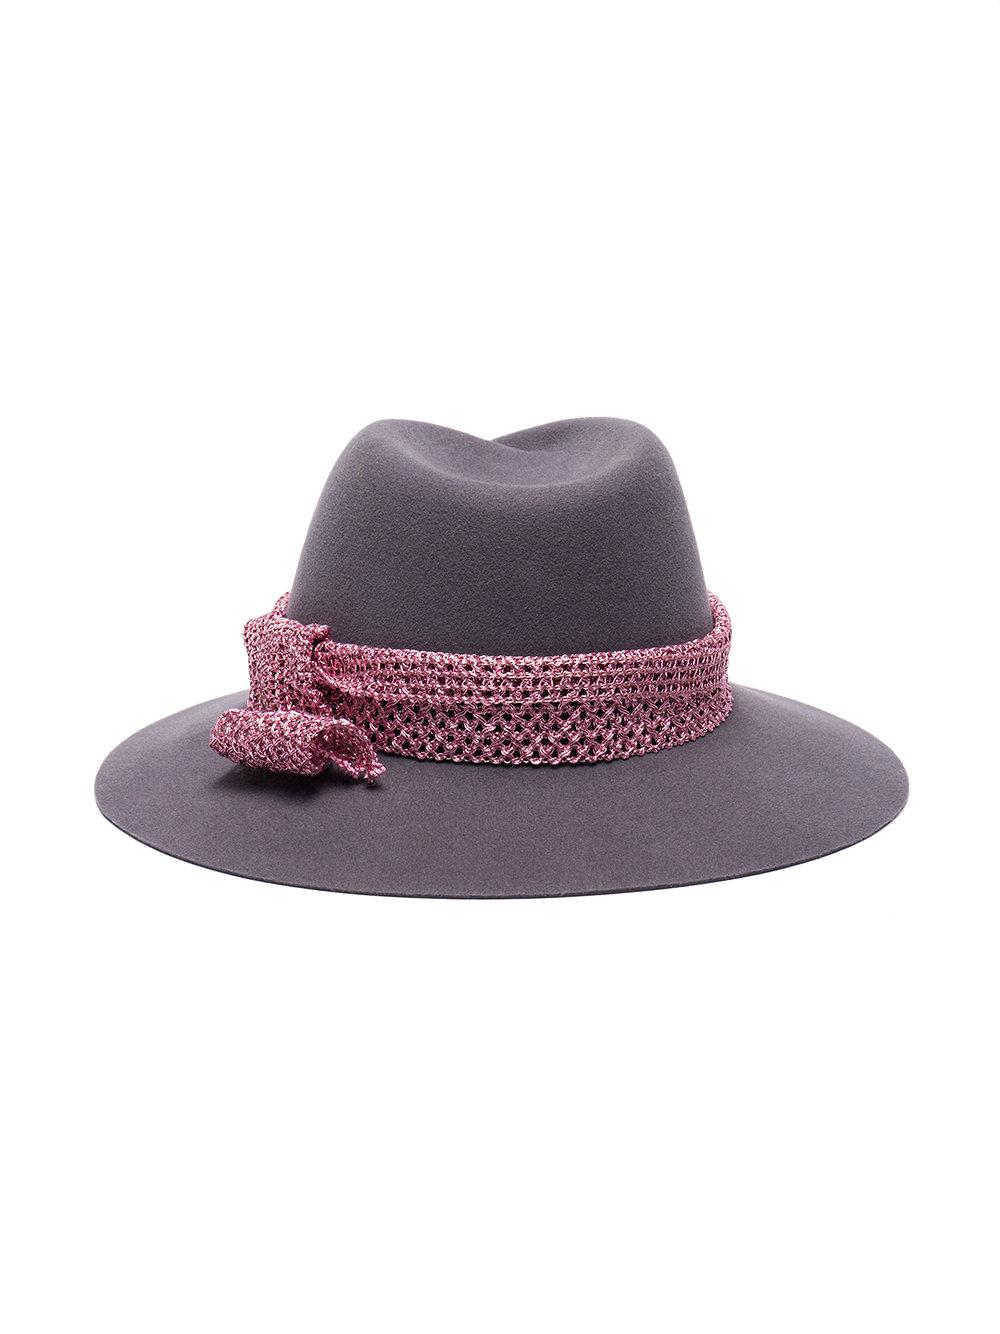 44c2f614ba99a Lyst - Maison Michel Grey Virginie Wool Felt Hat in Gray - Save  13.765182186234824%